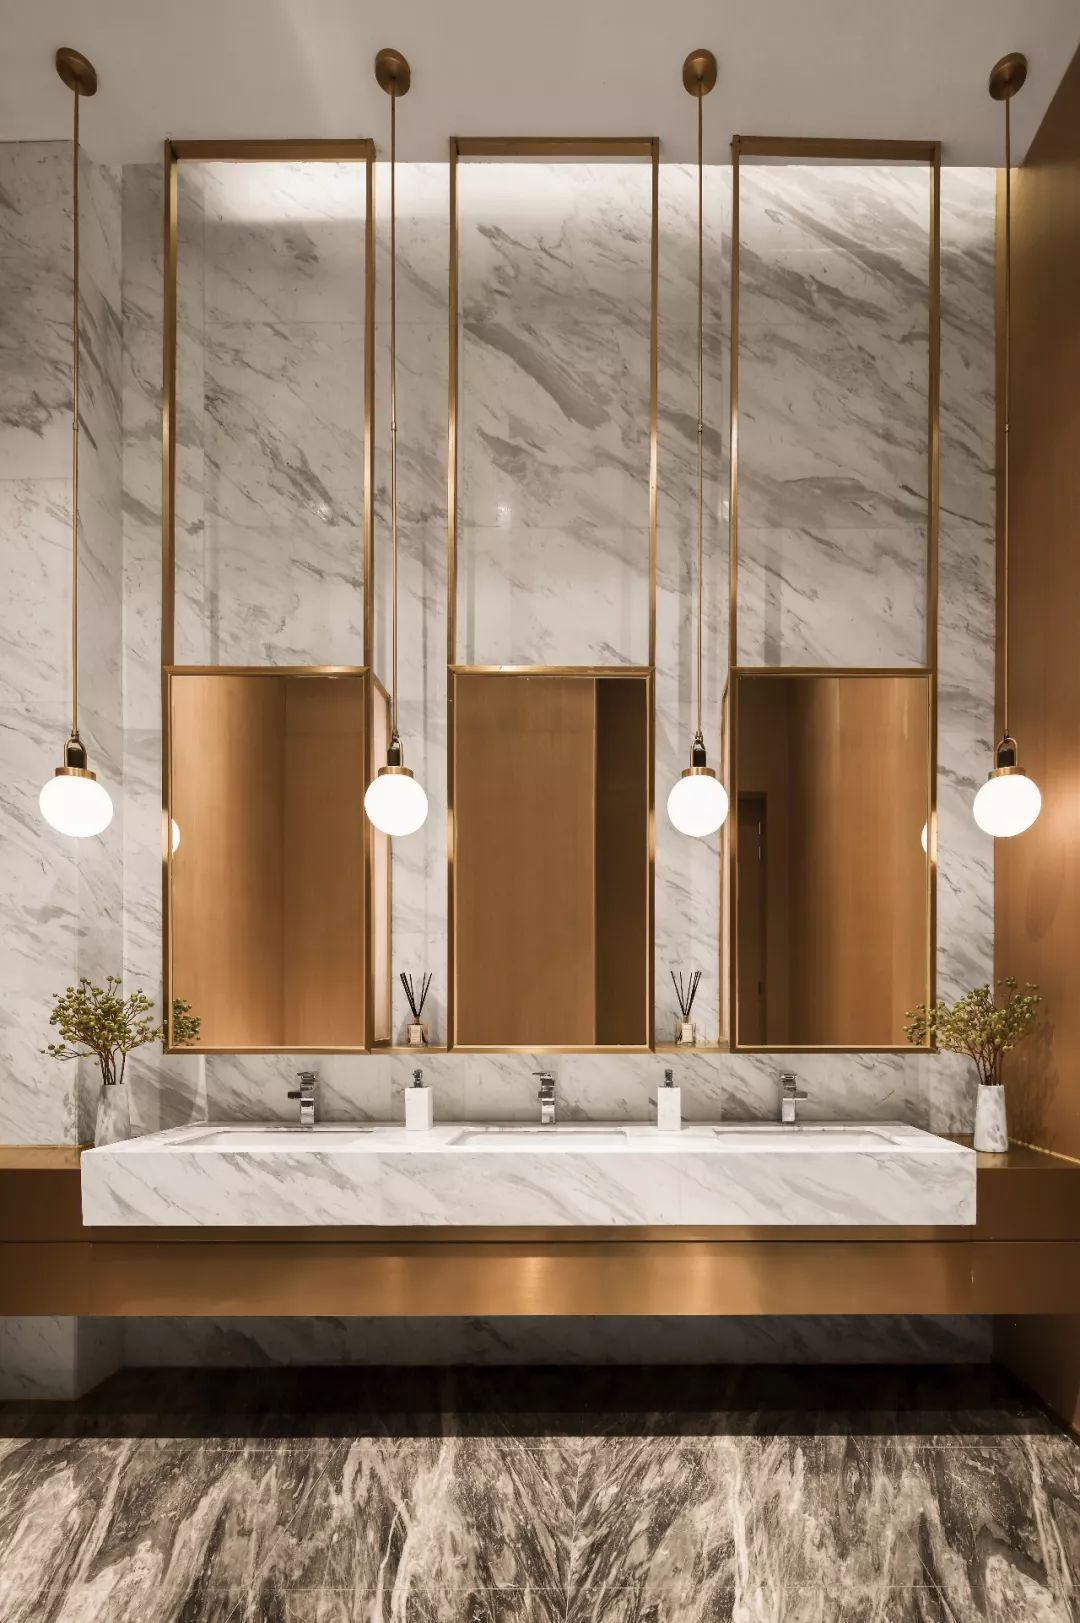 Find Out The Best Luxury Bathroom Lighting Design Selection For Your Next Interior Design Project Restroom Design Latest Bathroom Designs Toilet Design Modern